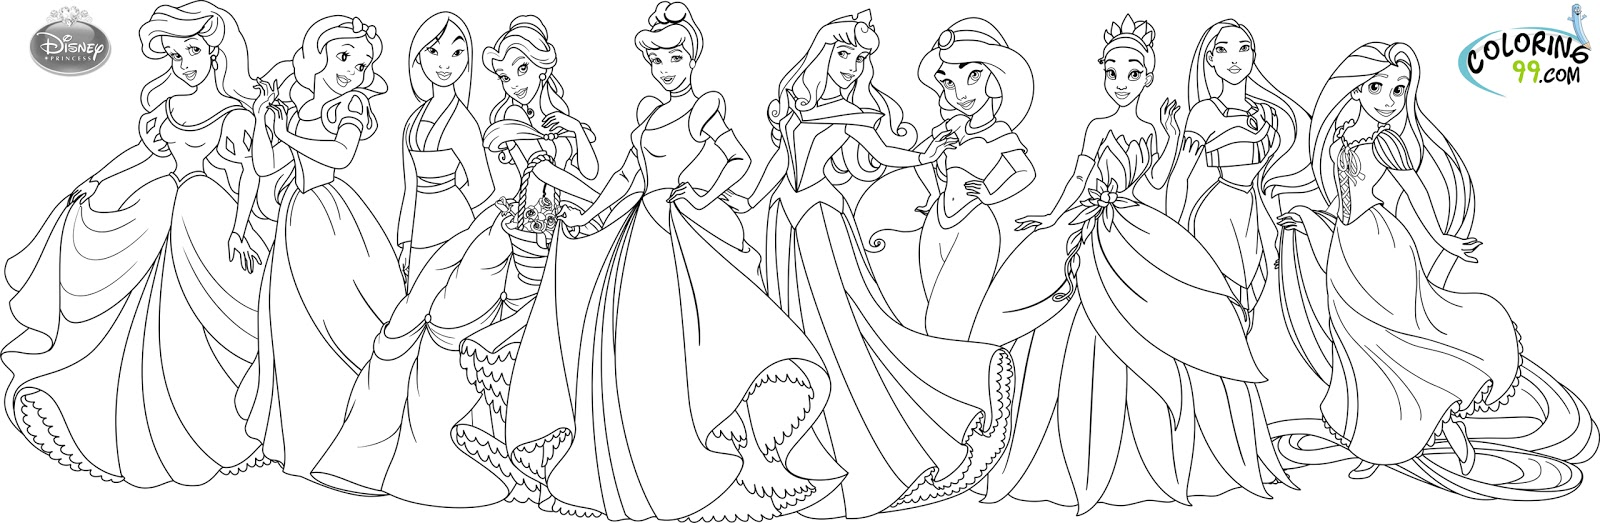 disney princess group coloring pages disney princess group coloring pages princess group disney coloring pages